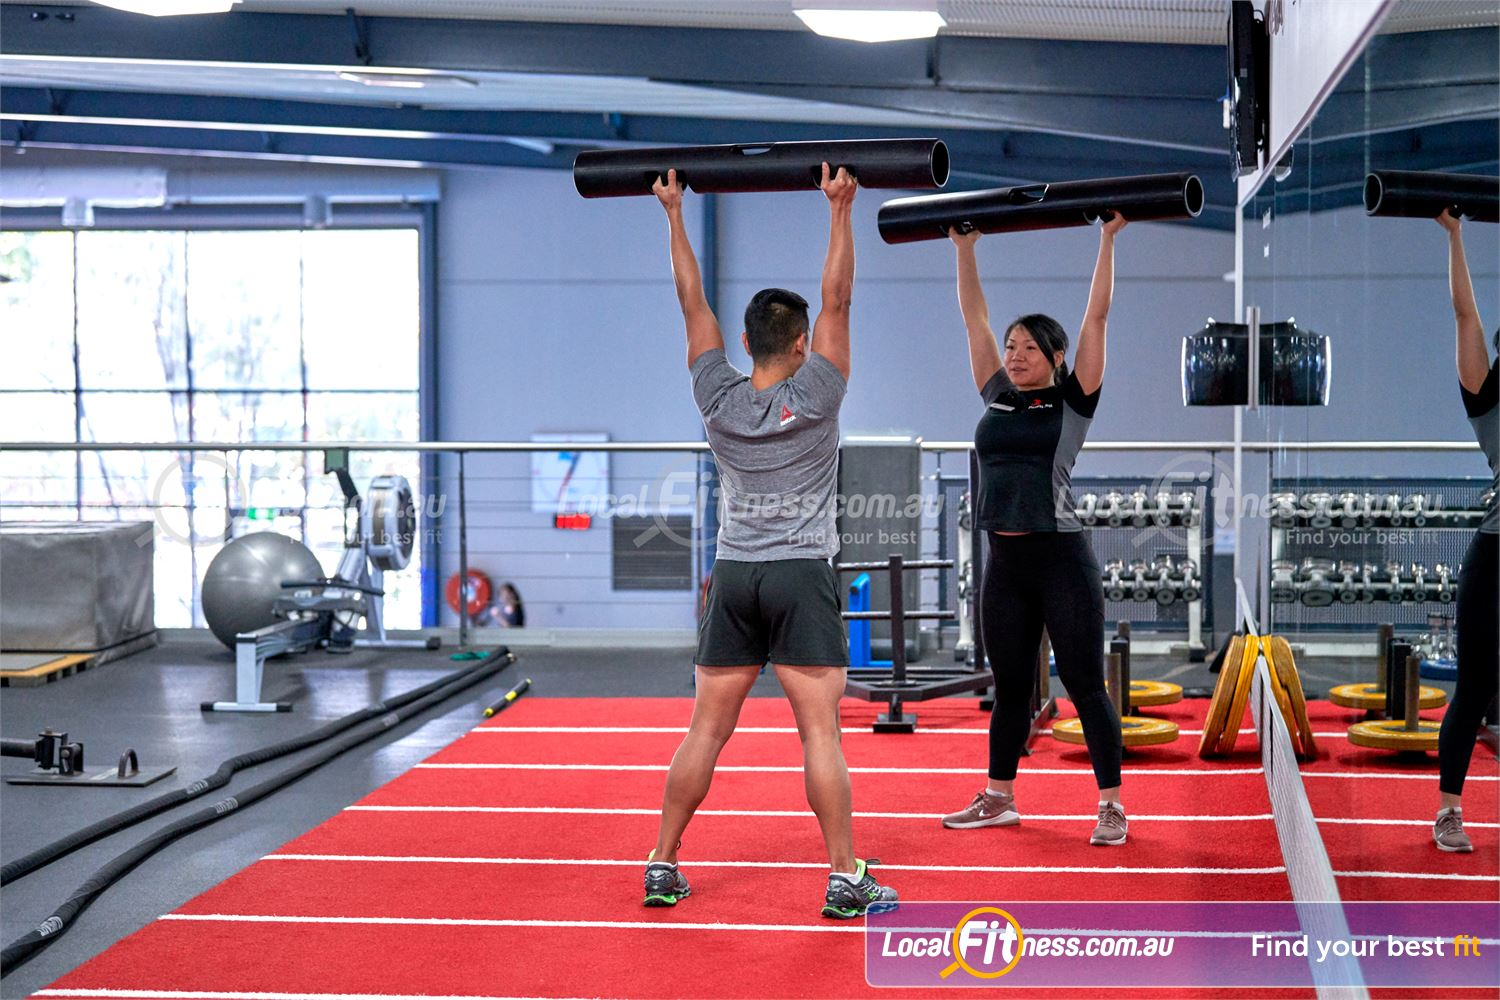 Fitness First Bayside Highett Get into functional movements with ViPR training.